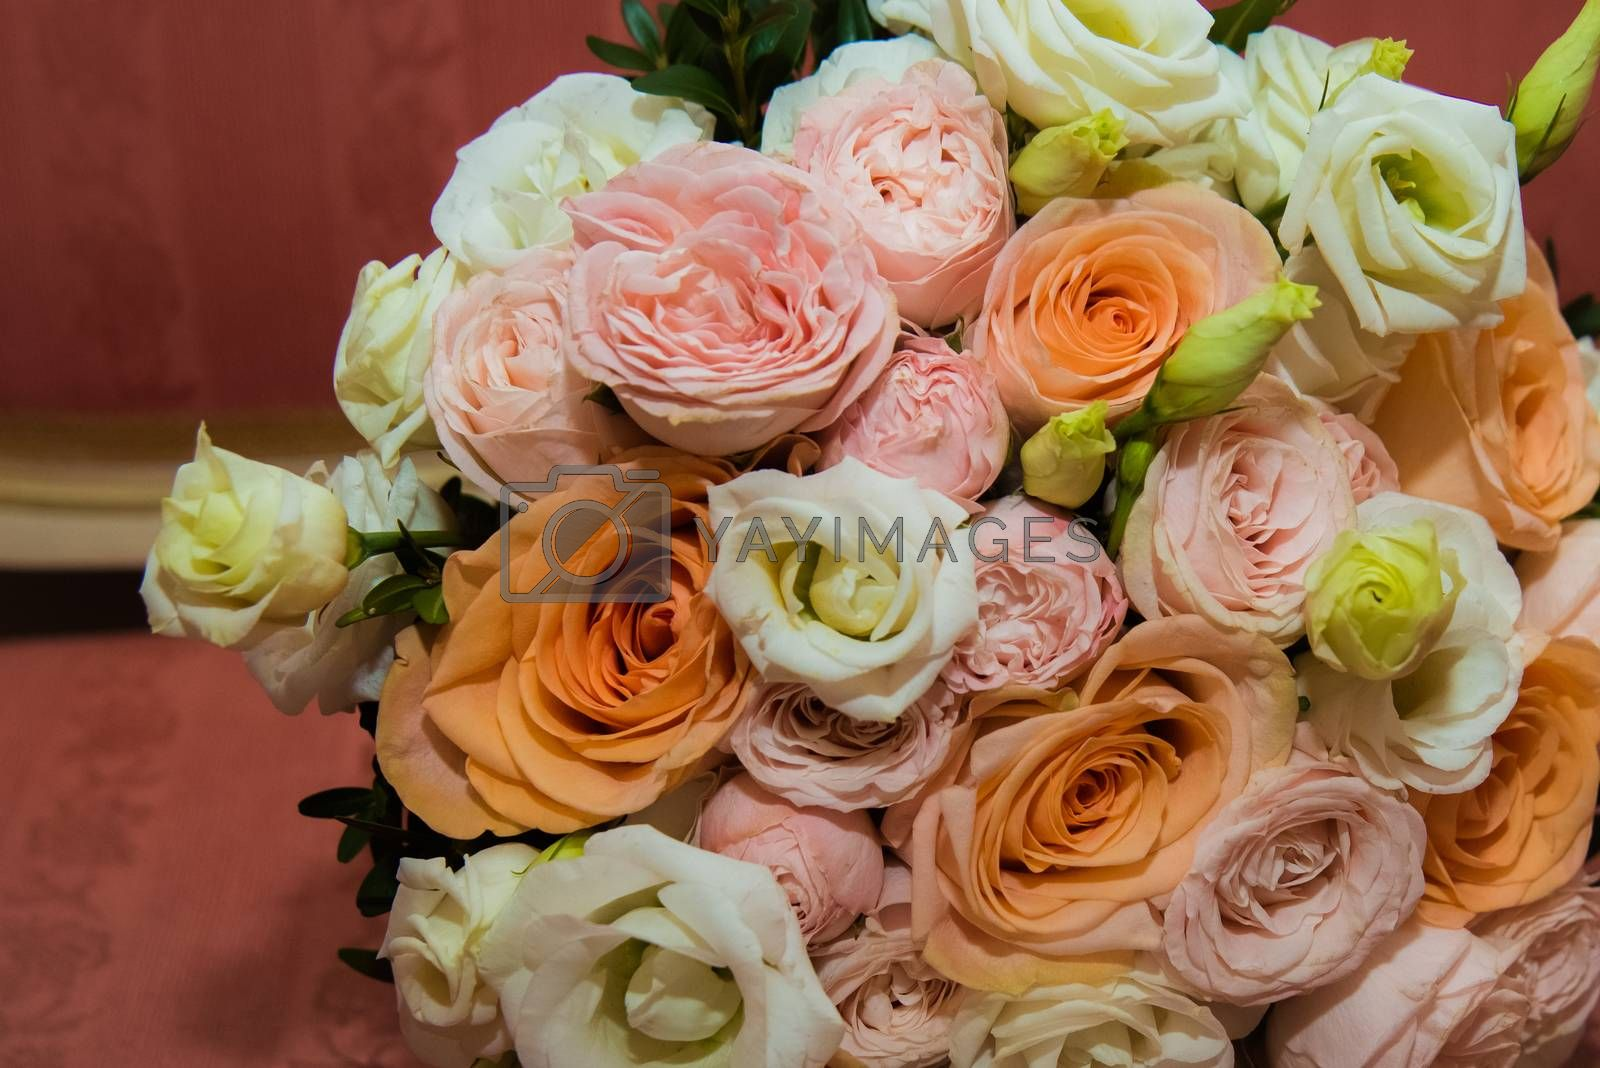 Beautiful wedding bouquet of pink, white, orange roses and green leaves